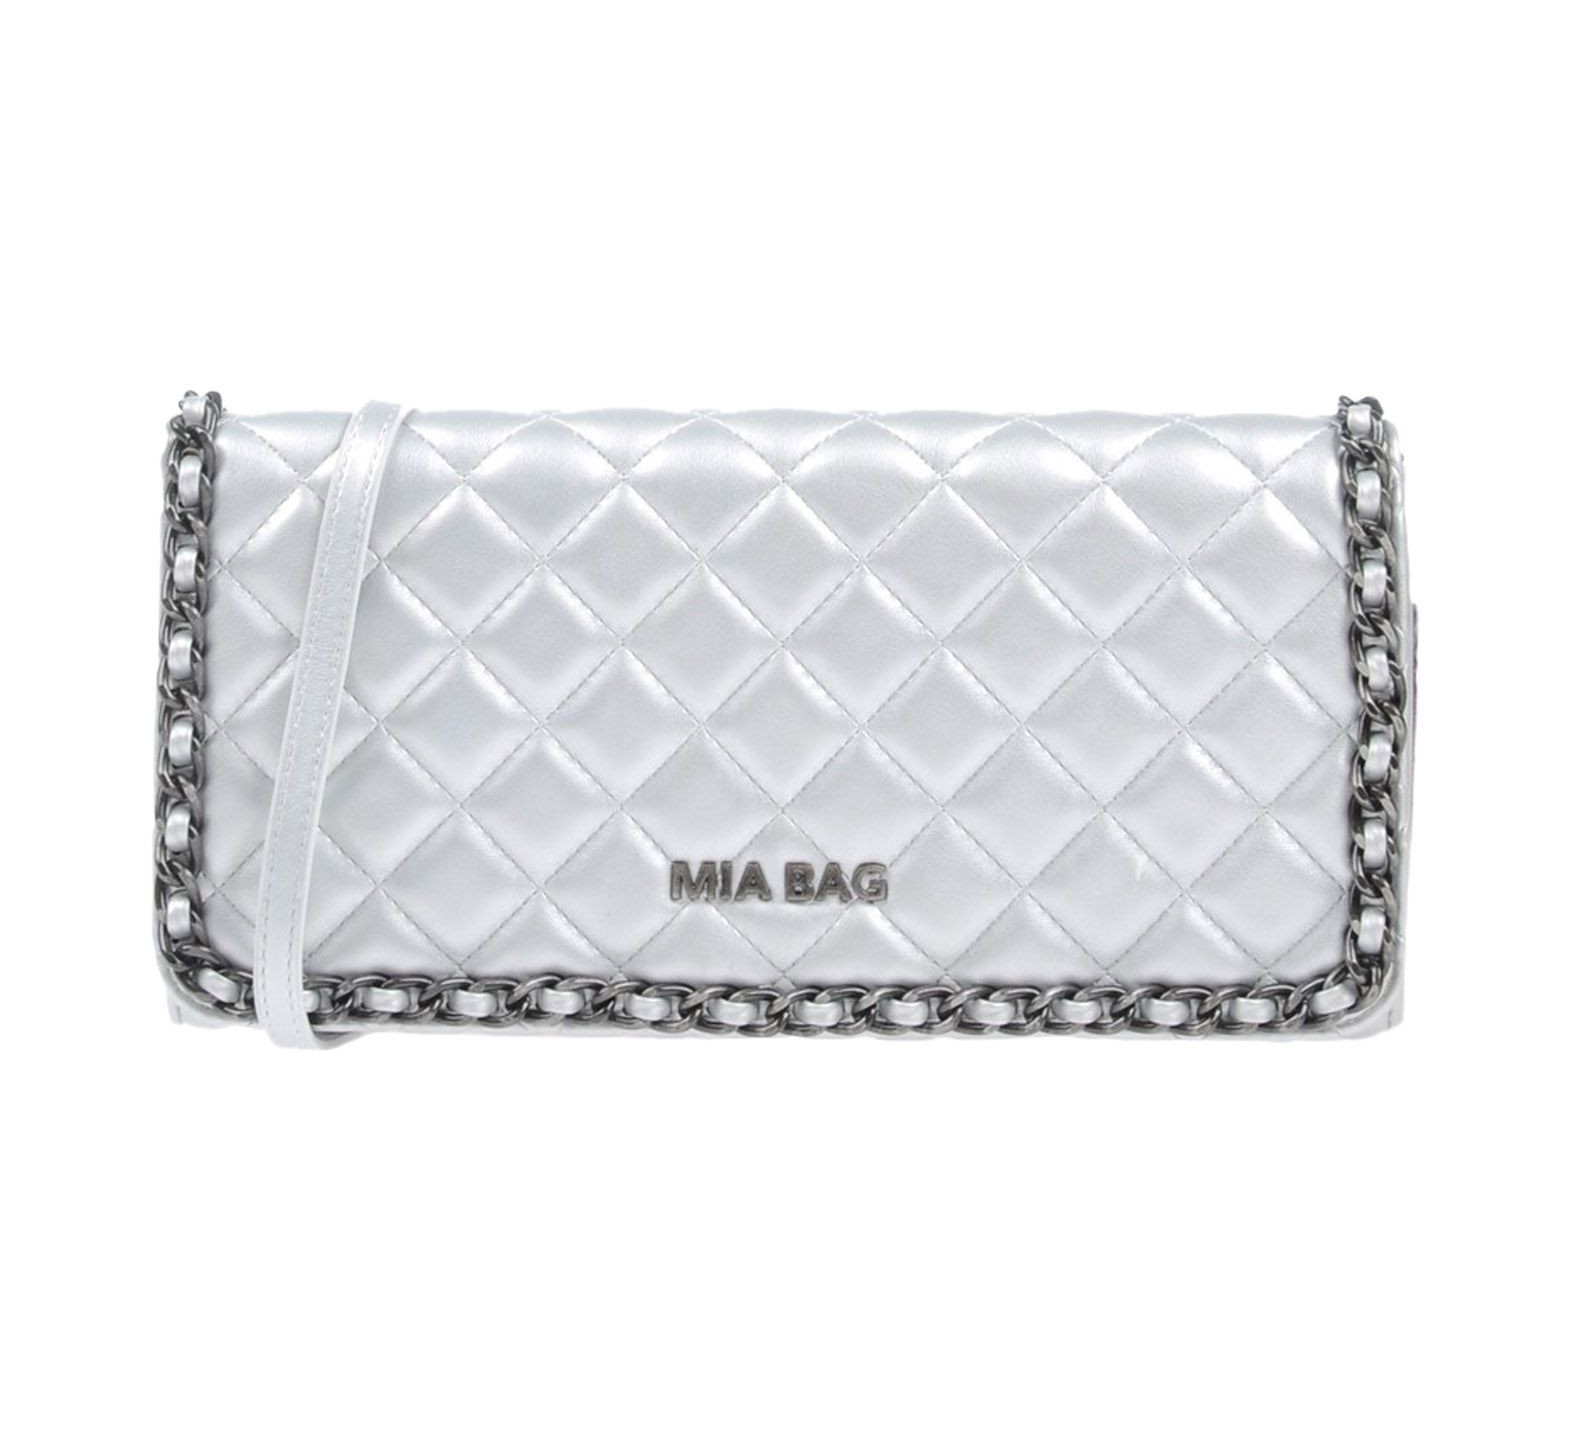 Accessorise with a cute silver clutch. This one by Mia Bag USD 121.00